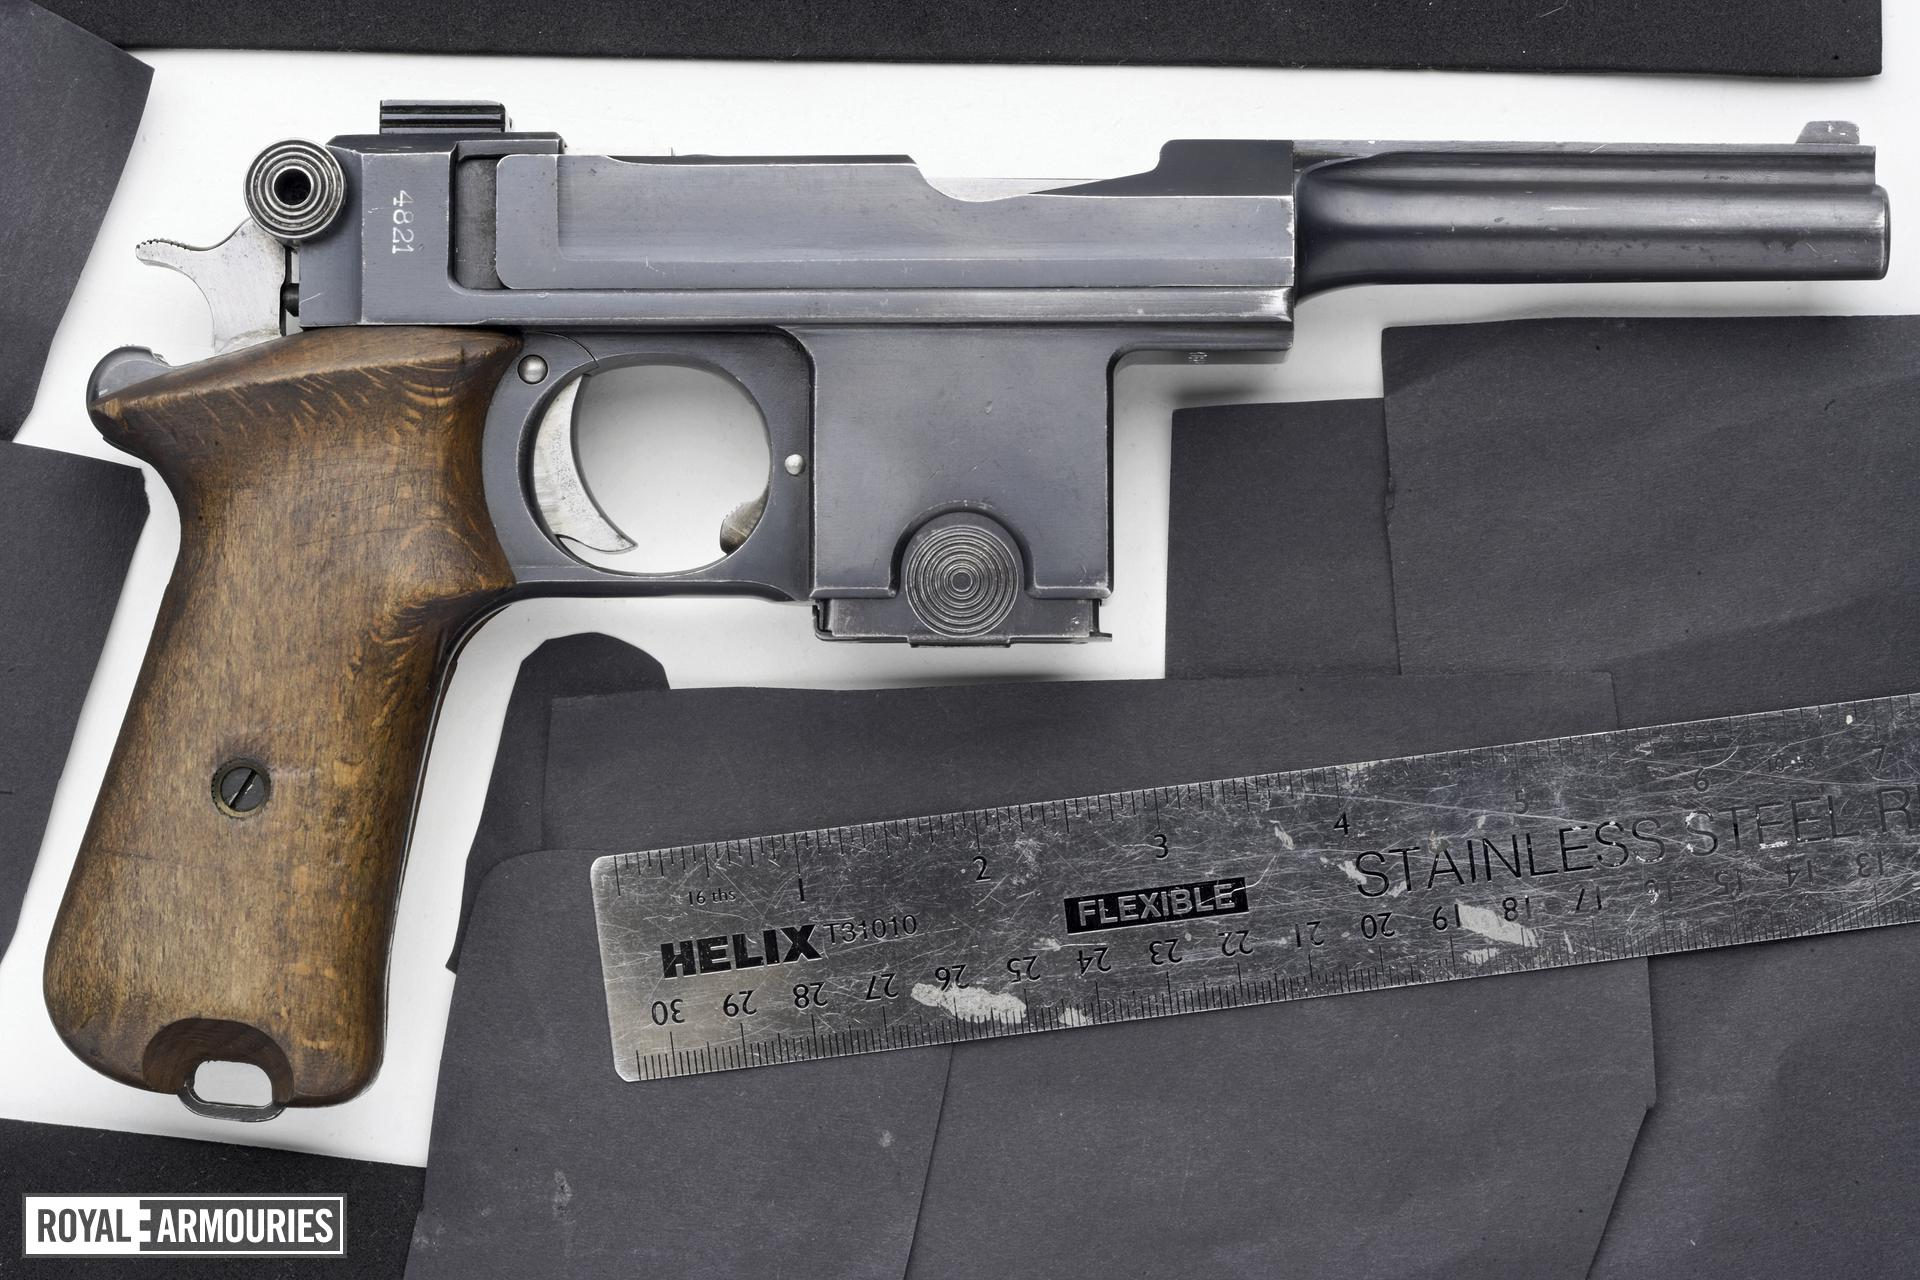 Centrefire self-loading pistol - Bergmann Bayard Model 1910/21 Converted from 1911-1914 Danish contract Model 1910, produced at SAAEP Herstal Belgium to a Model 1910/21 at the Danish Royal Armoury.